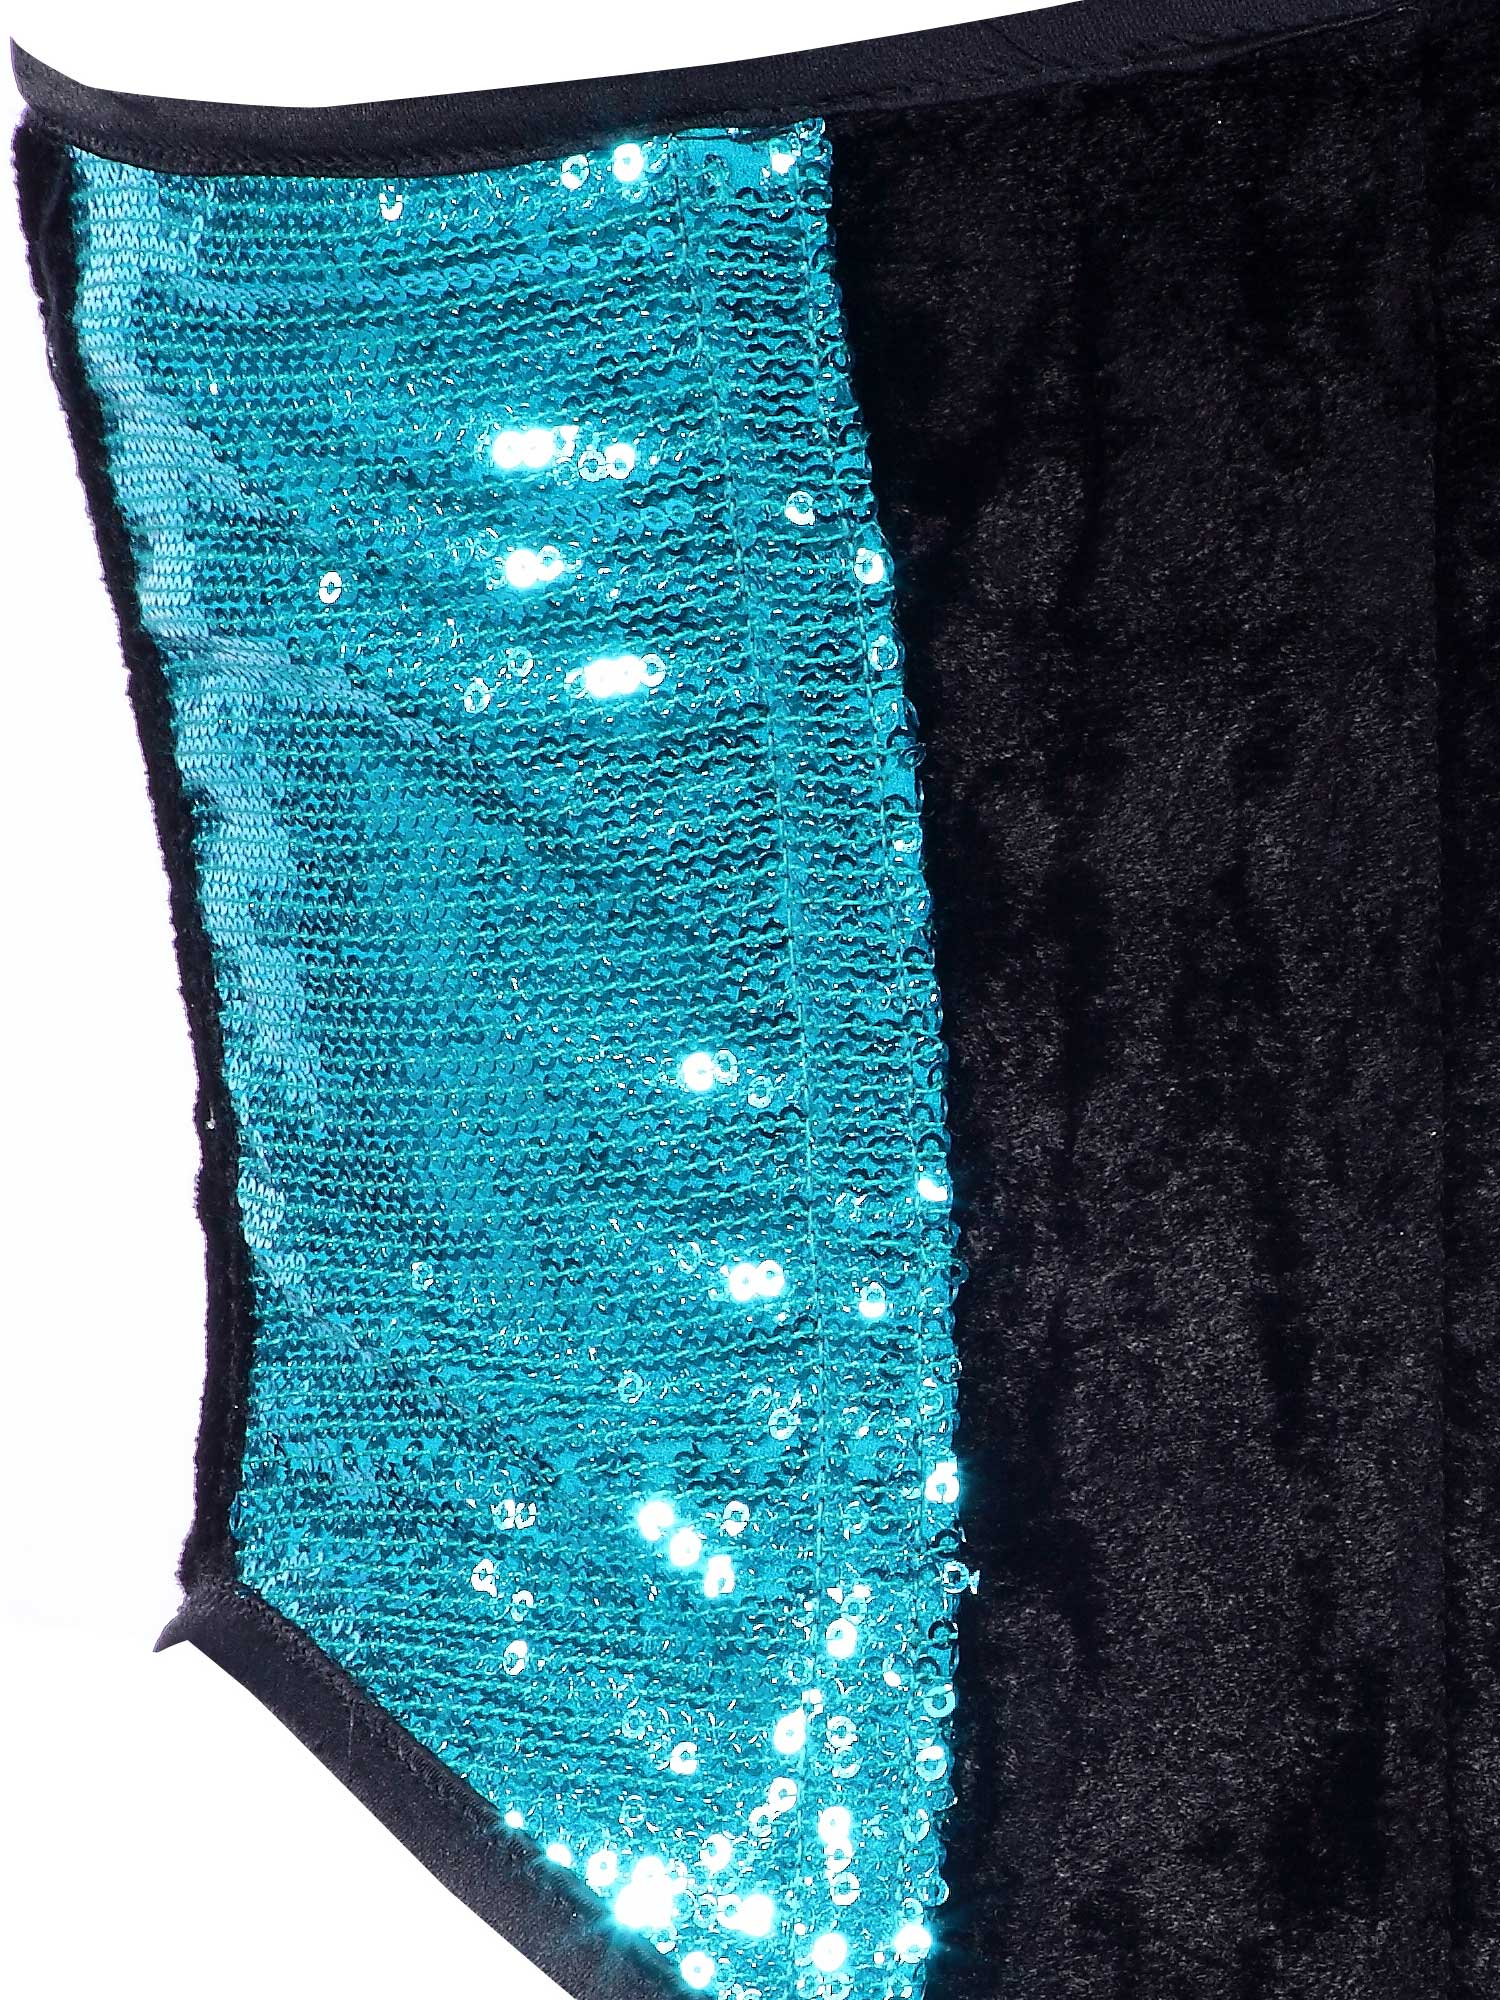 blue_and_black_sequin_fabric_steel_boning_underbust_corset_waist_cincher_bustier_bustiers_and_corsets_2.jpg